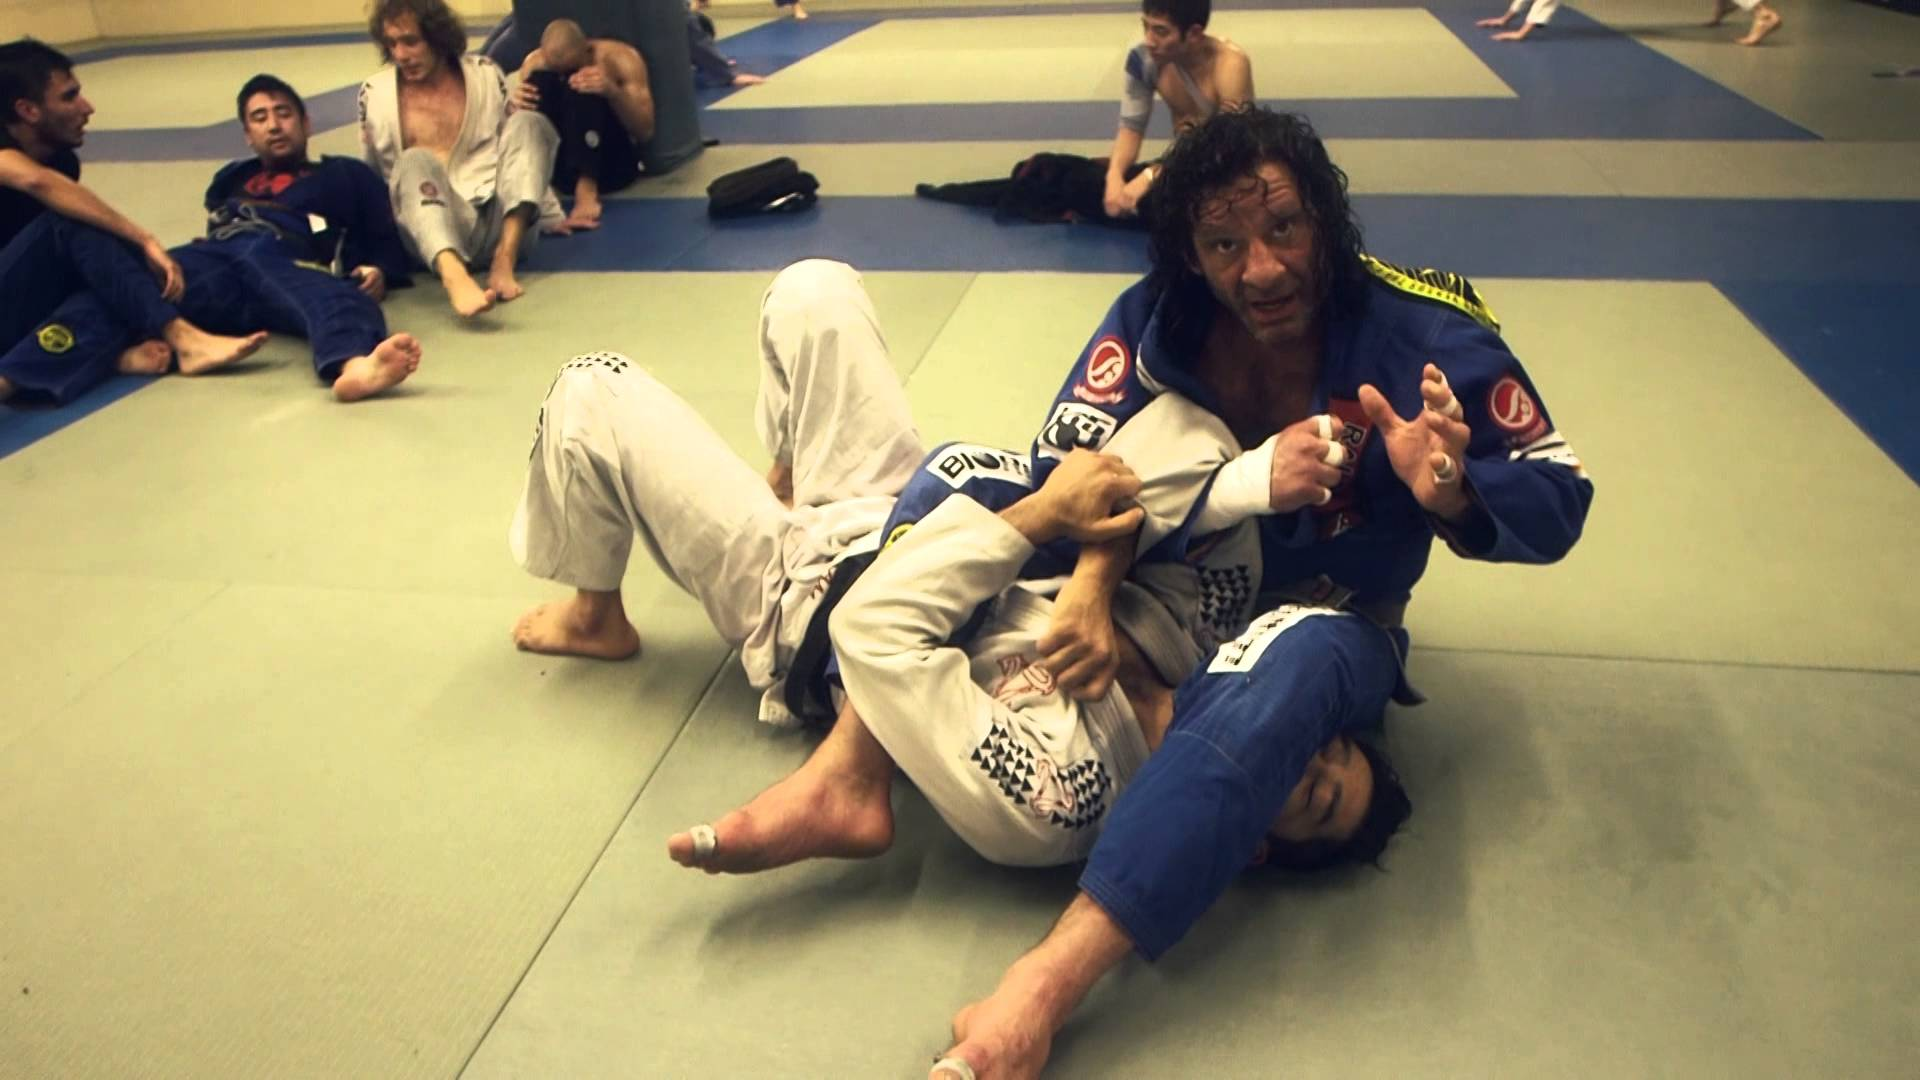 Details for finishing the armbar from mount